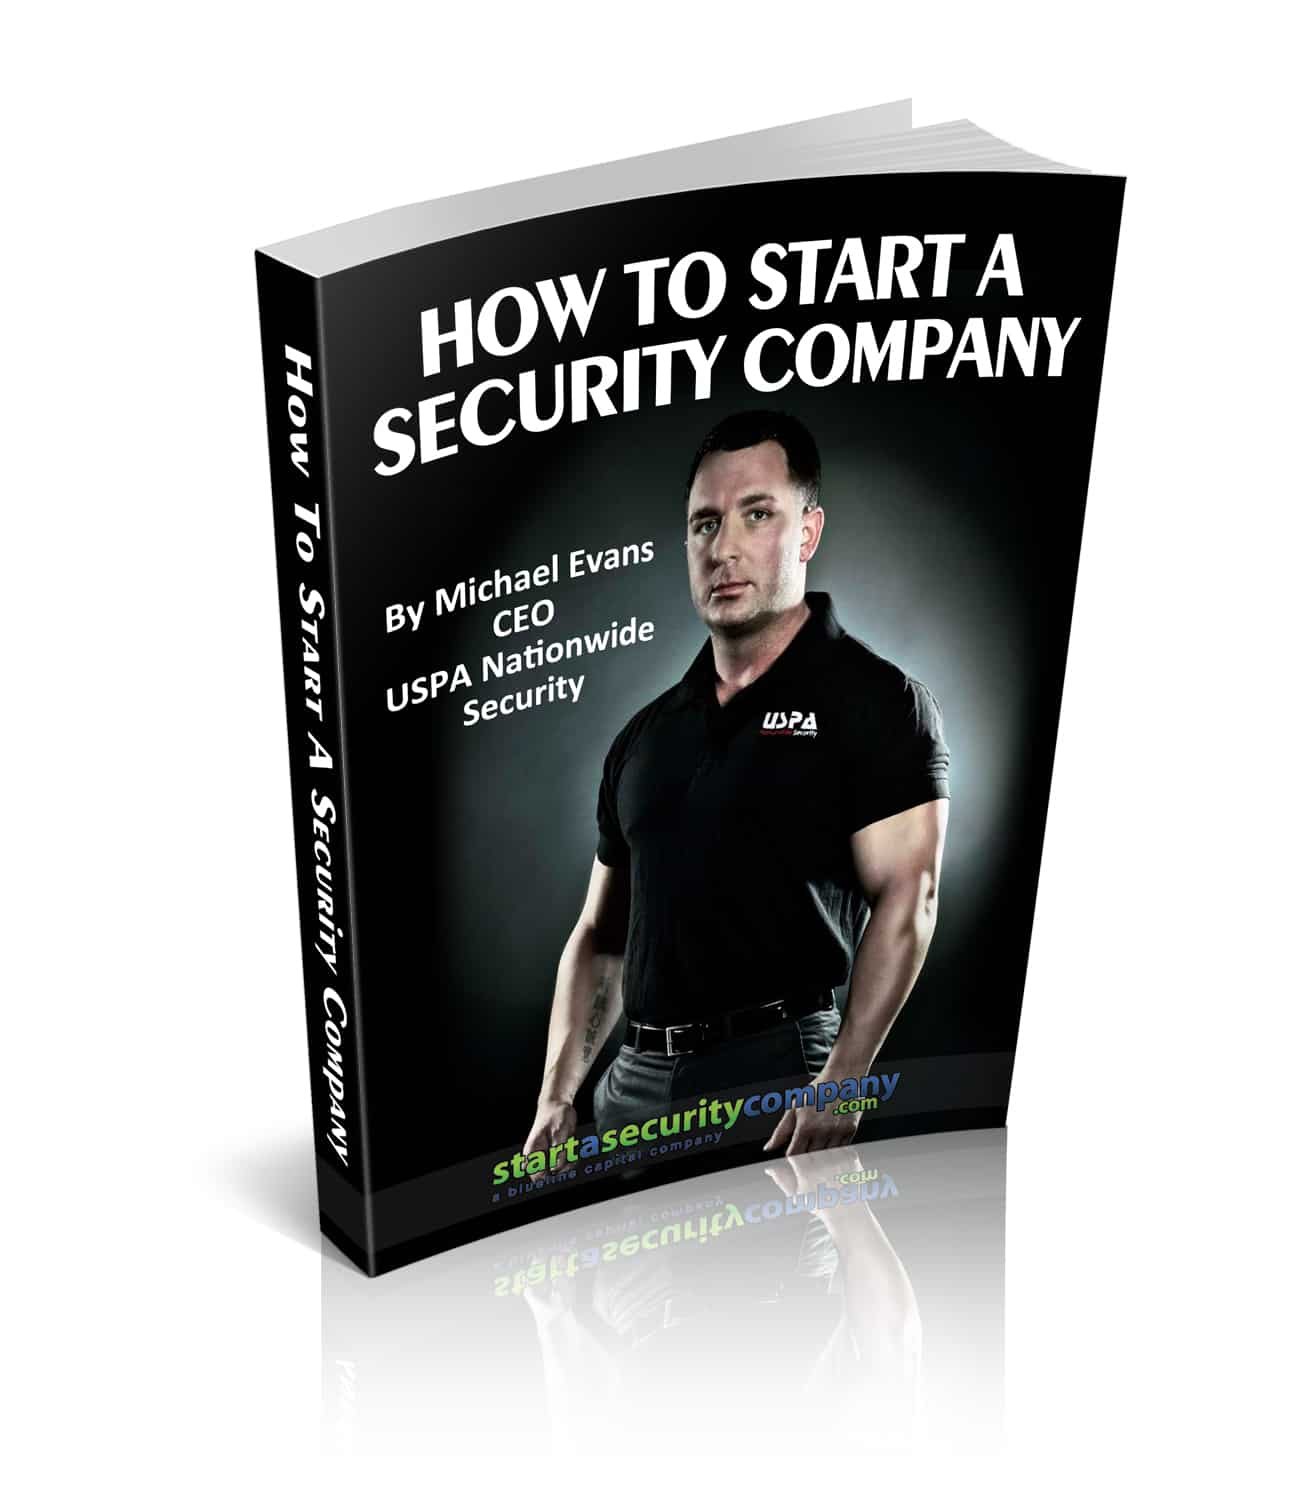 How-To-Start-A-Security-Company-Ebook